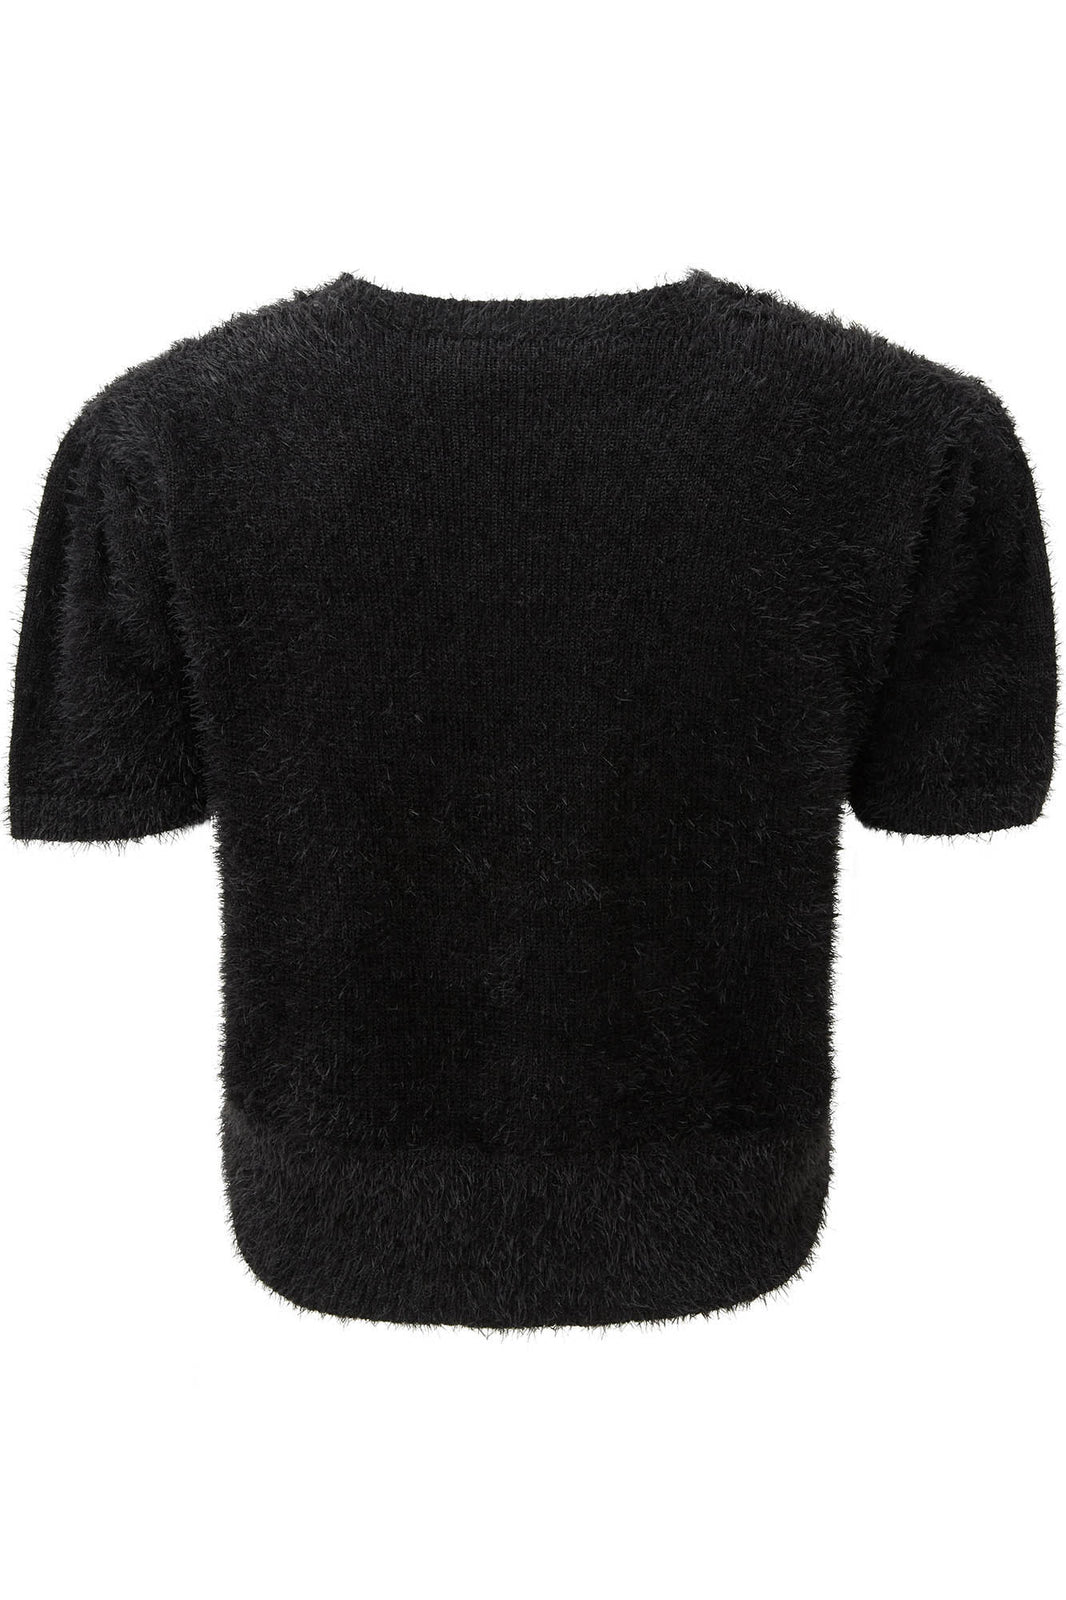 Nexus Fuzzy Knit Sweater [B]